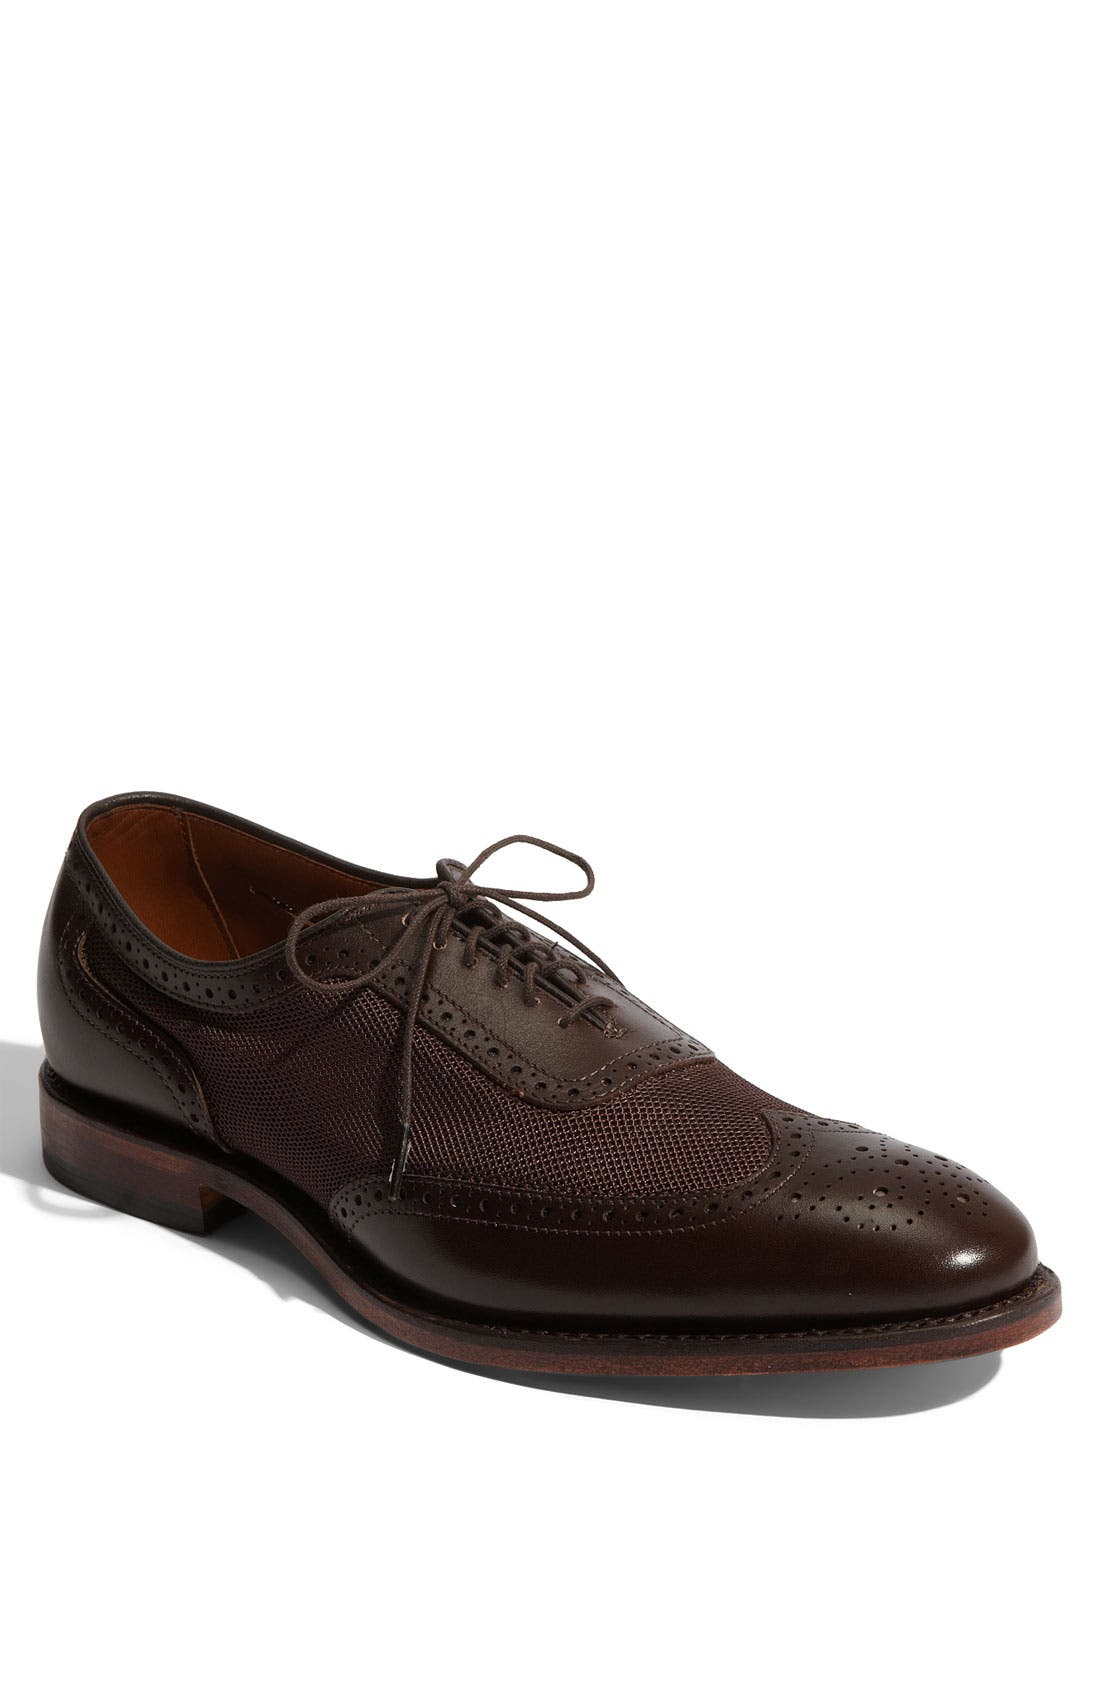 Alternate Image 1 Selected - Allen Edmonds 'Strawfut' Oxford